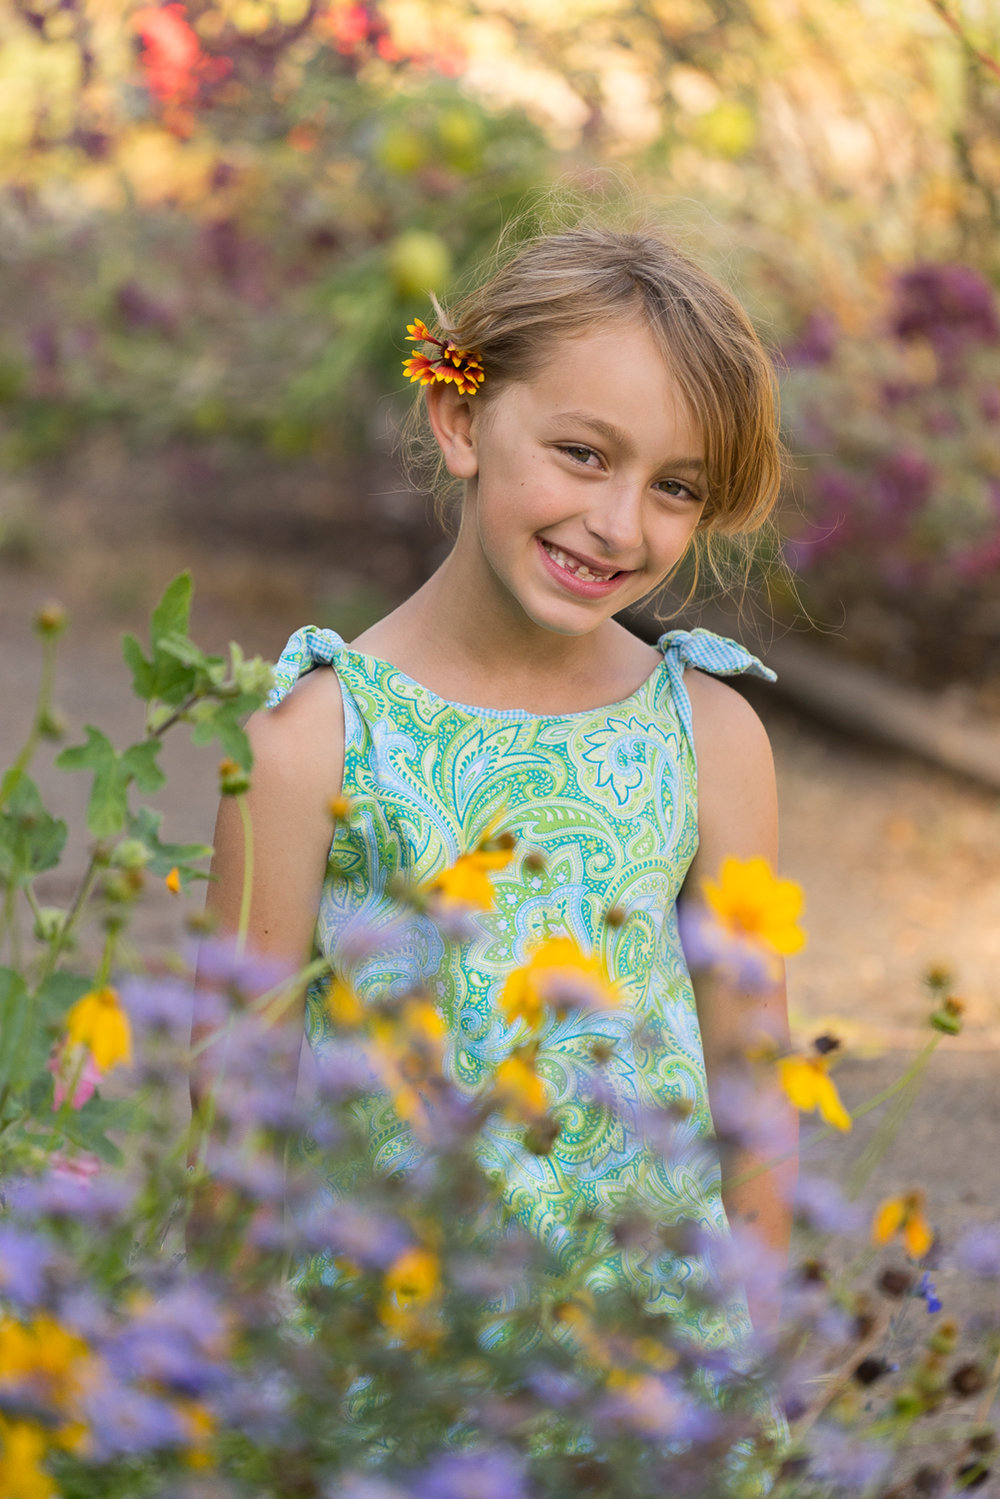 smiling girl with flowers - Lake Merritt Gardens - Oakland photographer